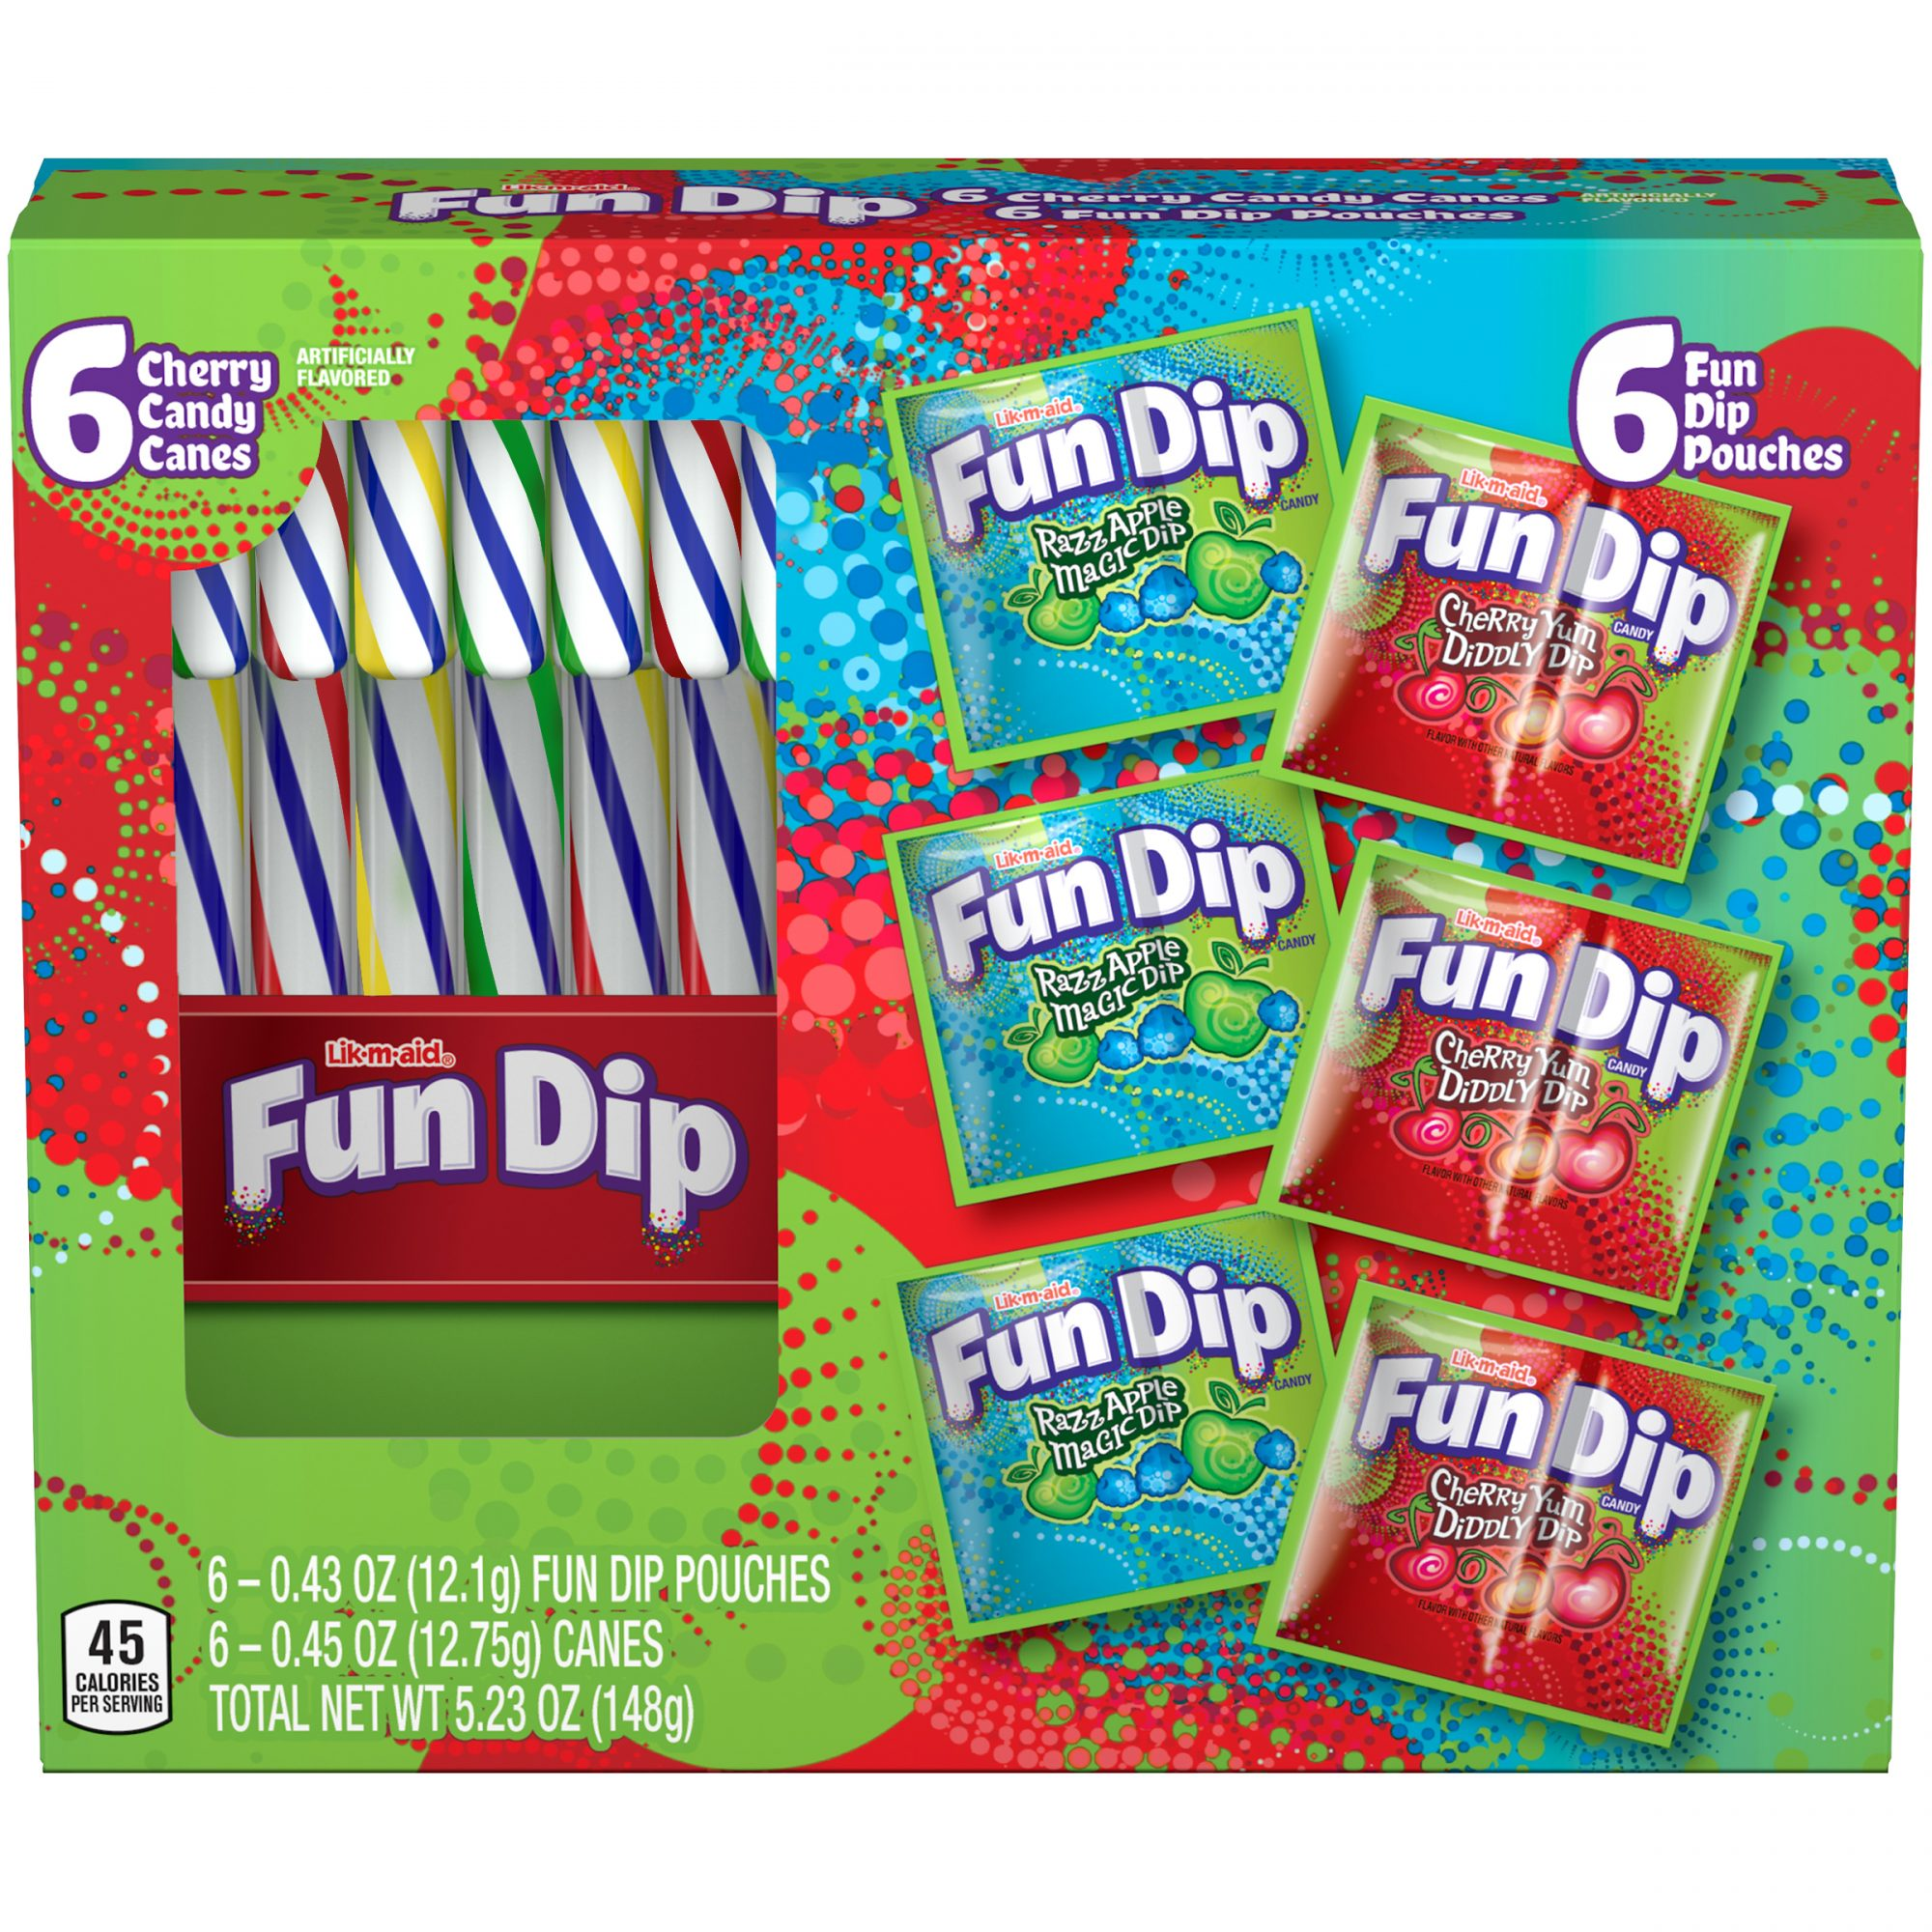 Get Your Holiday Sweet Tooth Ready: Nerds Candy Canes and Fun Dip Candy Canes Now Exist